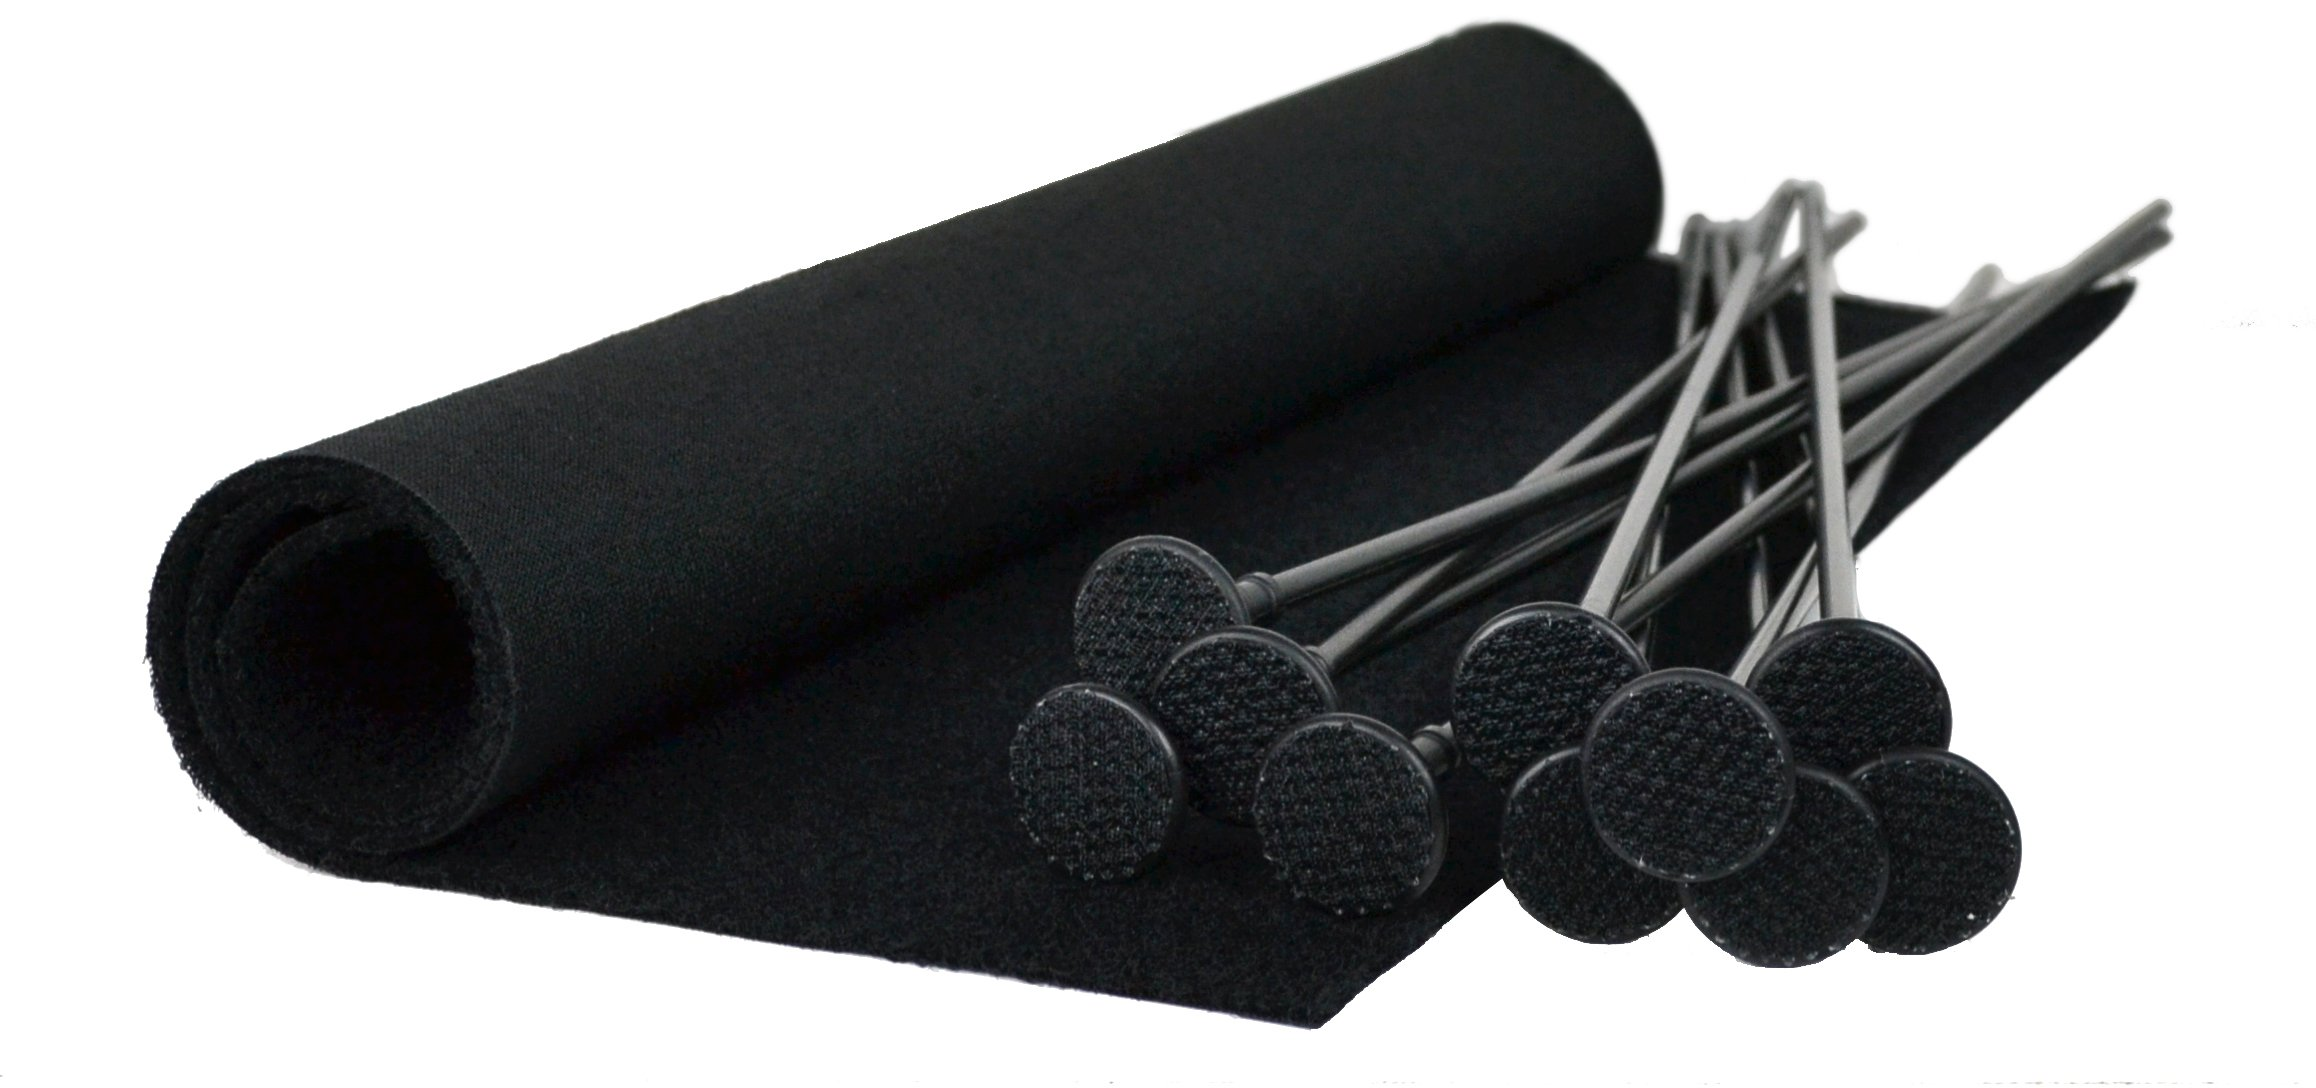 Gun Storage Solutions Pack of 10 Rifle Rods Starter Kit with Loop Fabric (15 x 19-Inch)